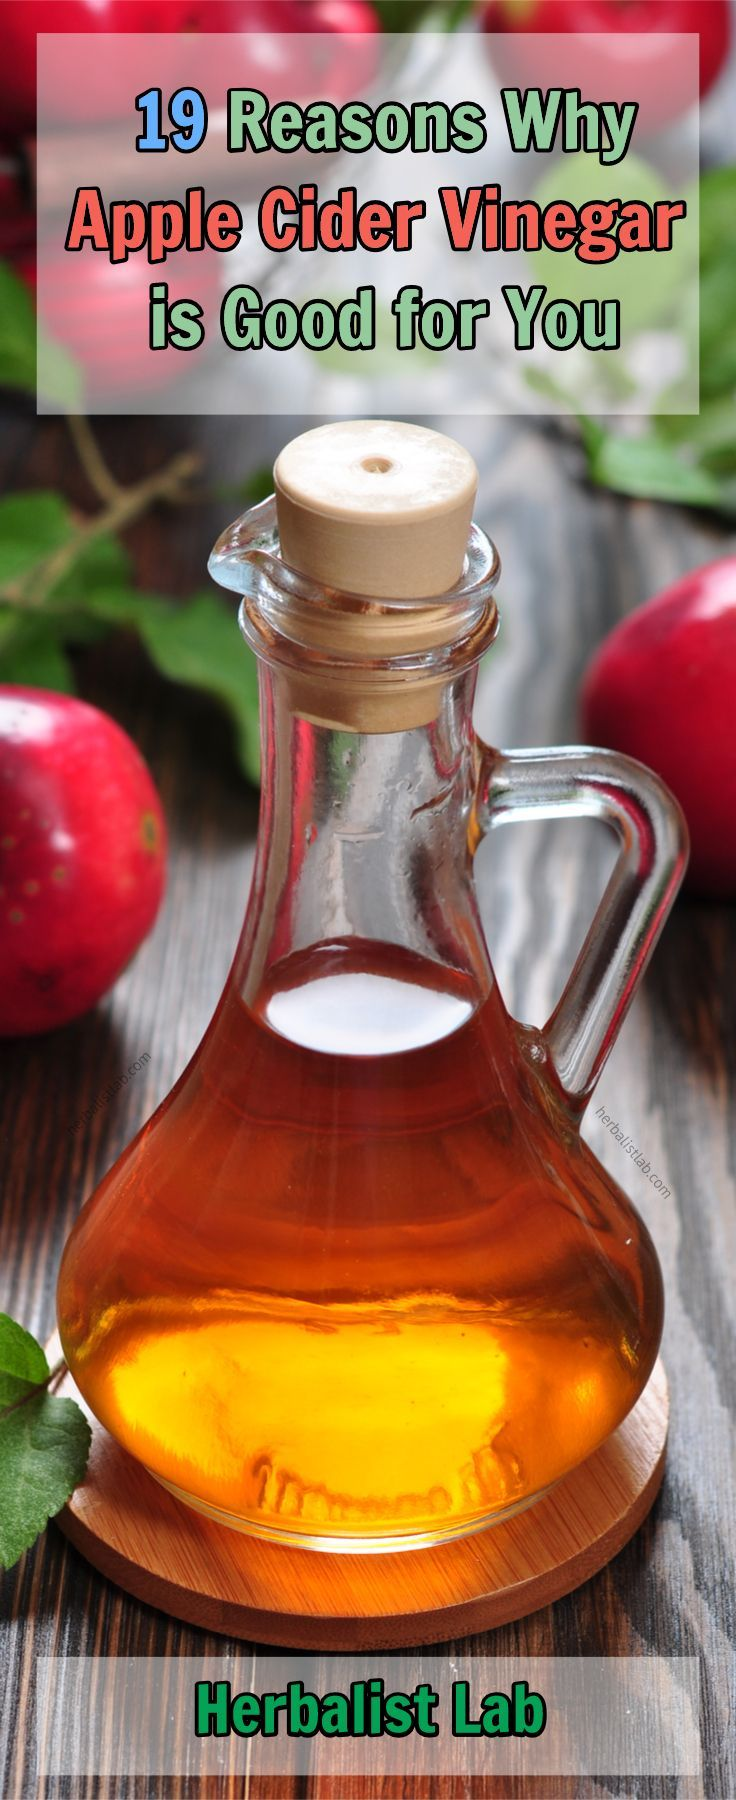 Apple cider vinegar is more than just an ingredient commonly used in your kitchen, with powerful antiseptic properties. Namely, vinegar is able to detoxify your entire organism and eliminate all poisonous compounds and waste. #AppleCiderVinegar